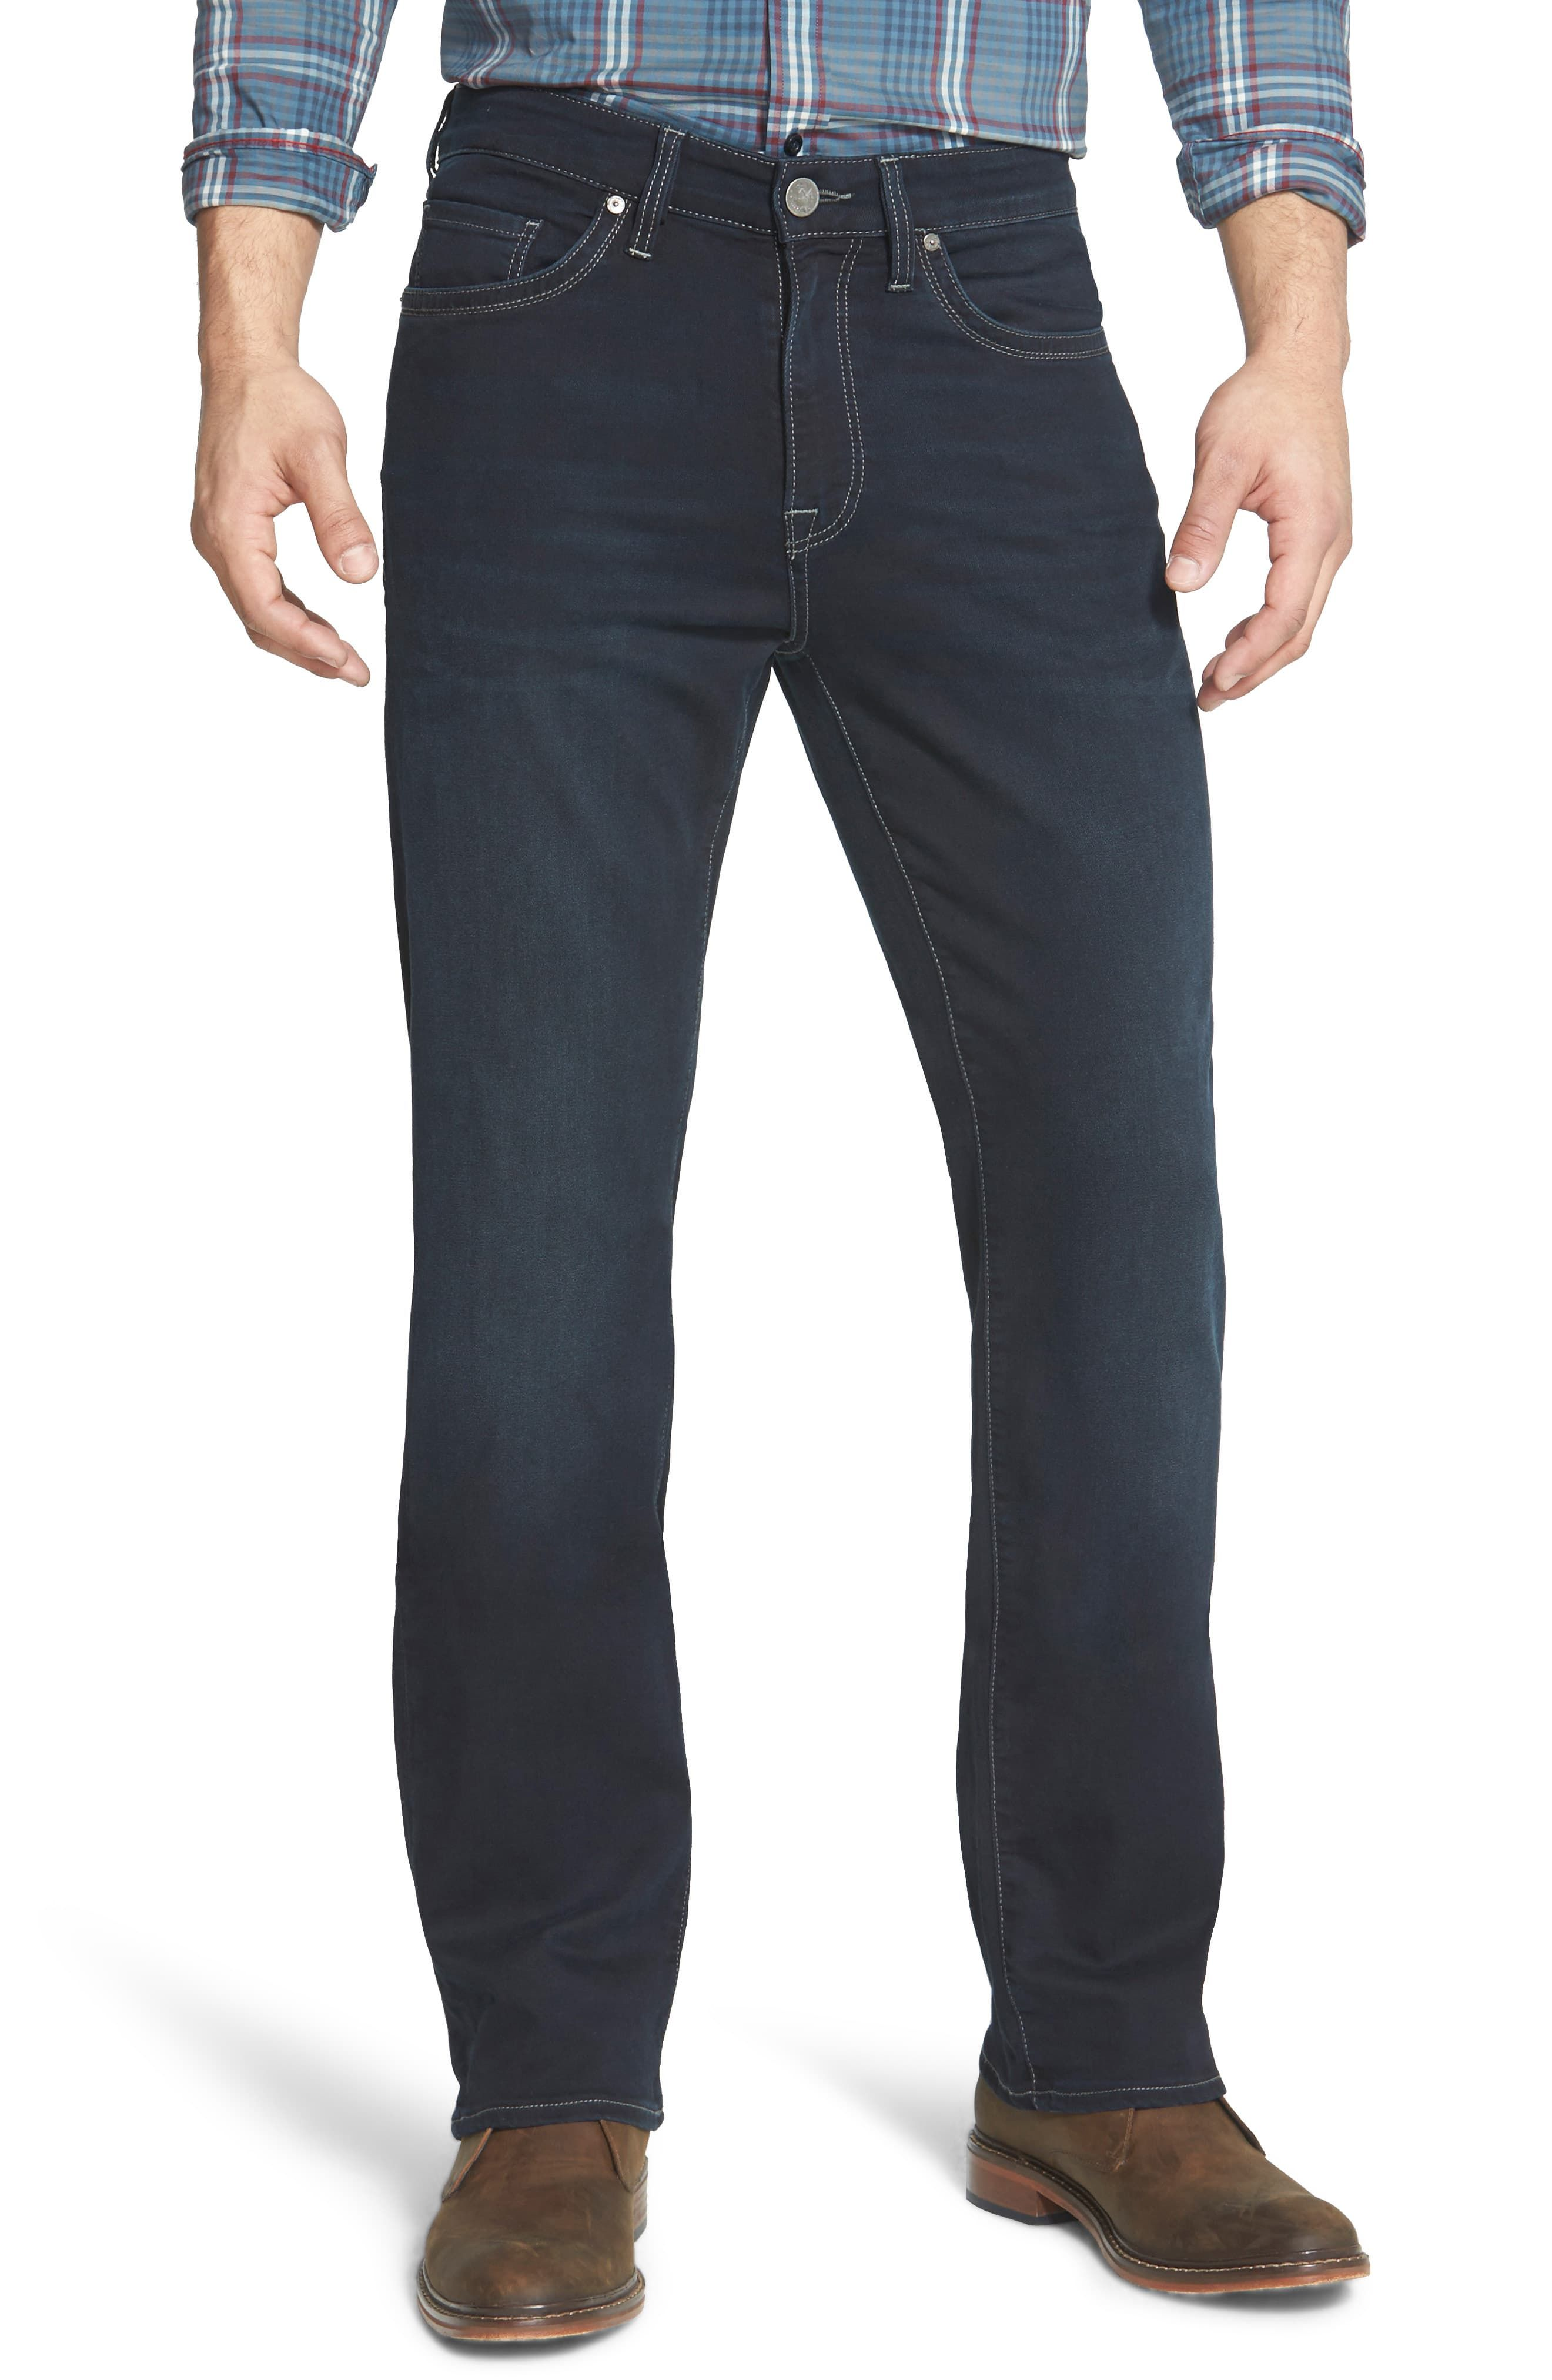 Men's Big & Tall 34 Heritage Charisma Relaxed Fit Jeans